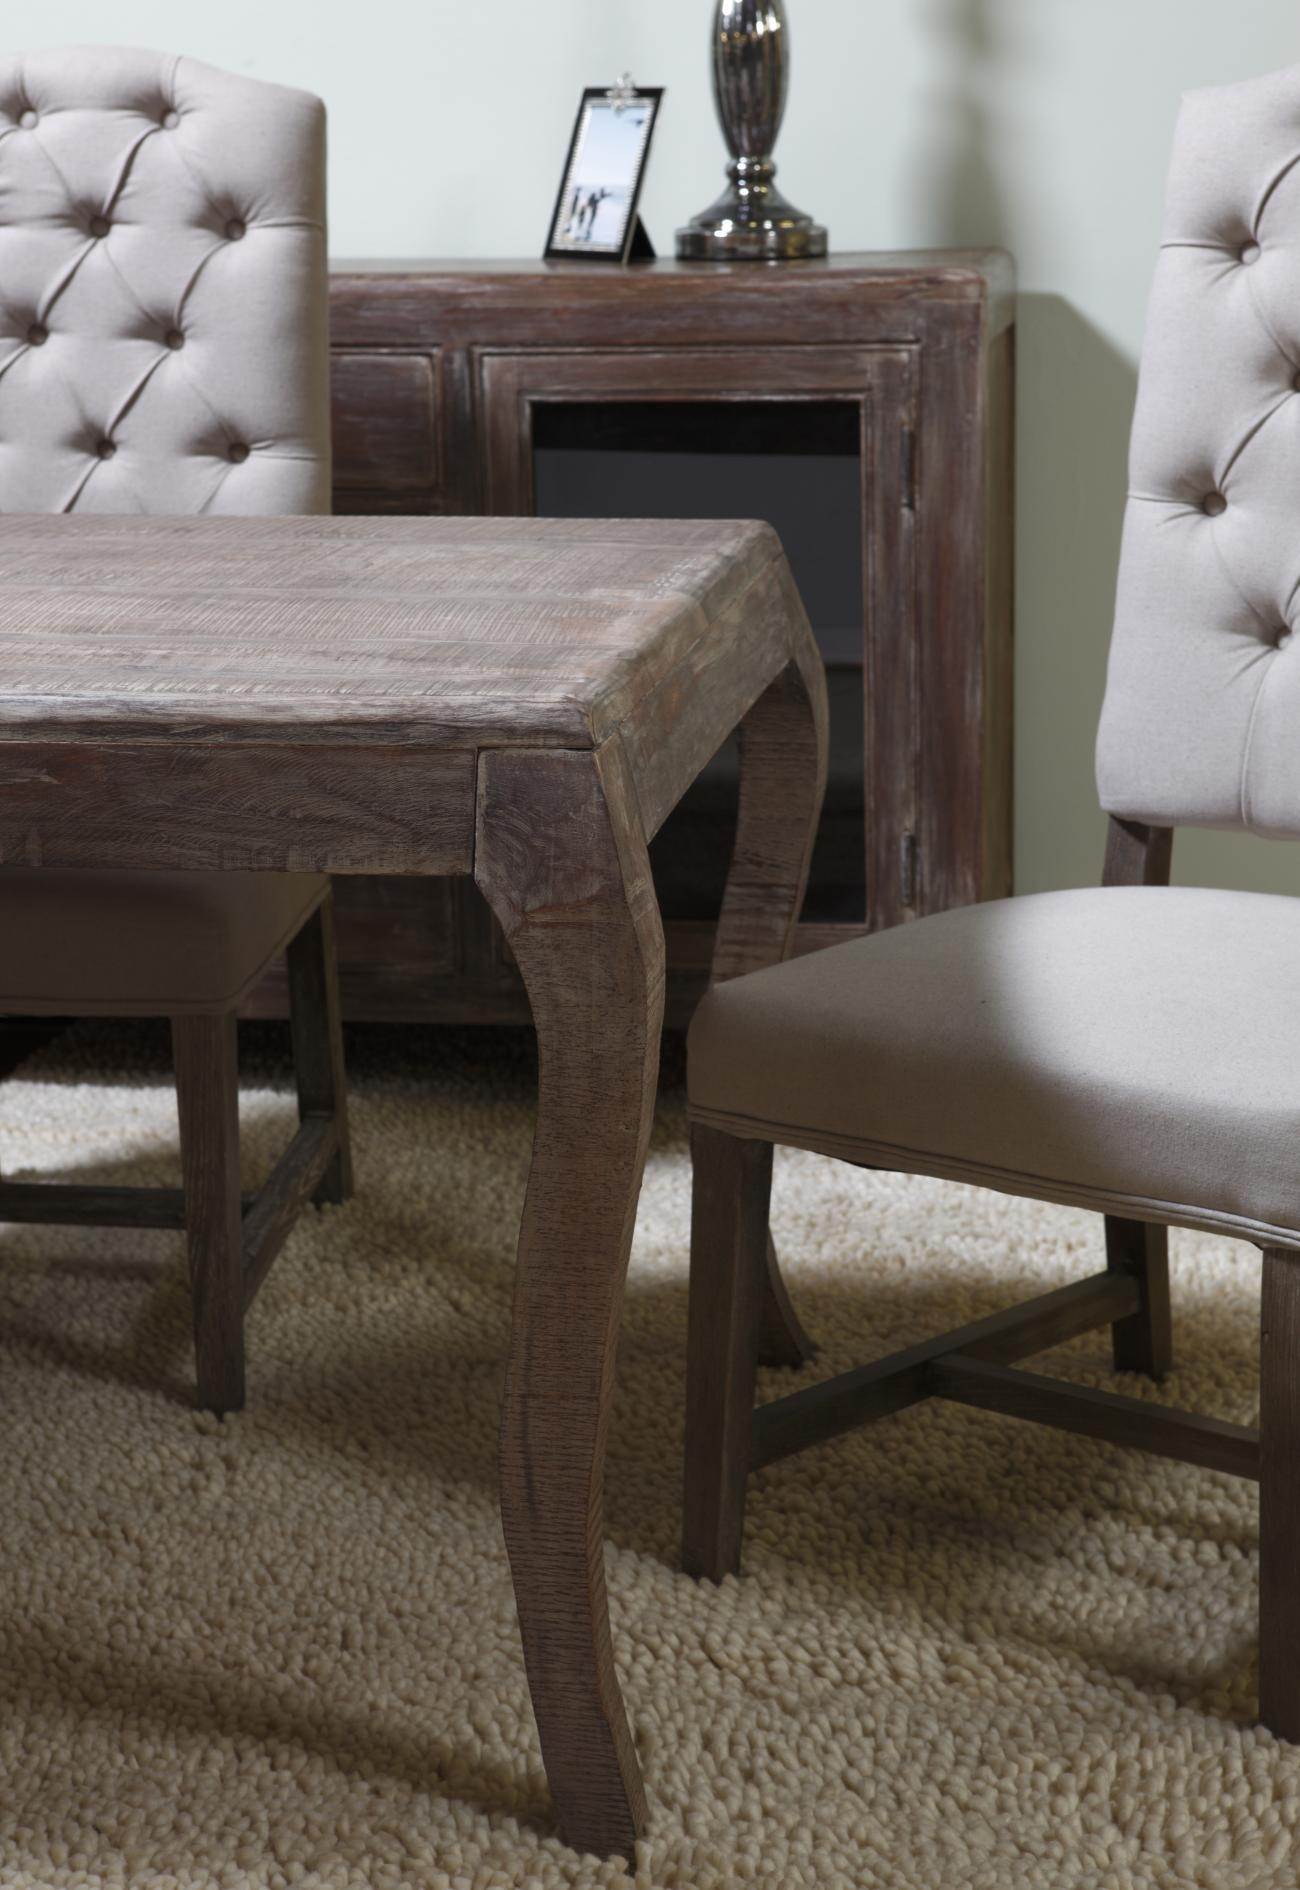 Light Colored Table And Cushioned Chairs